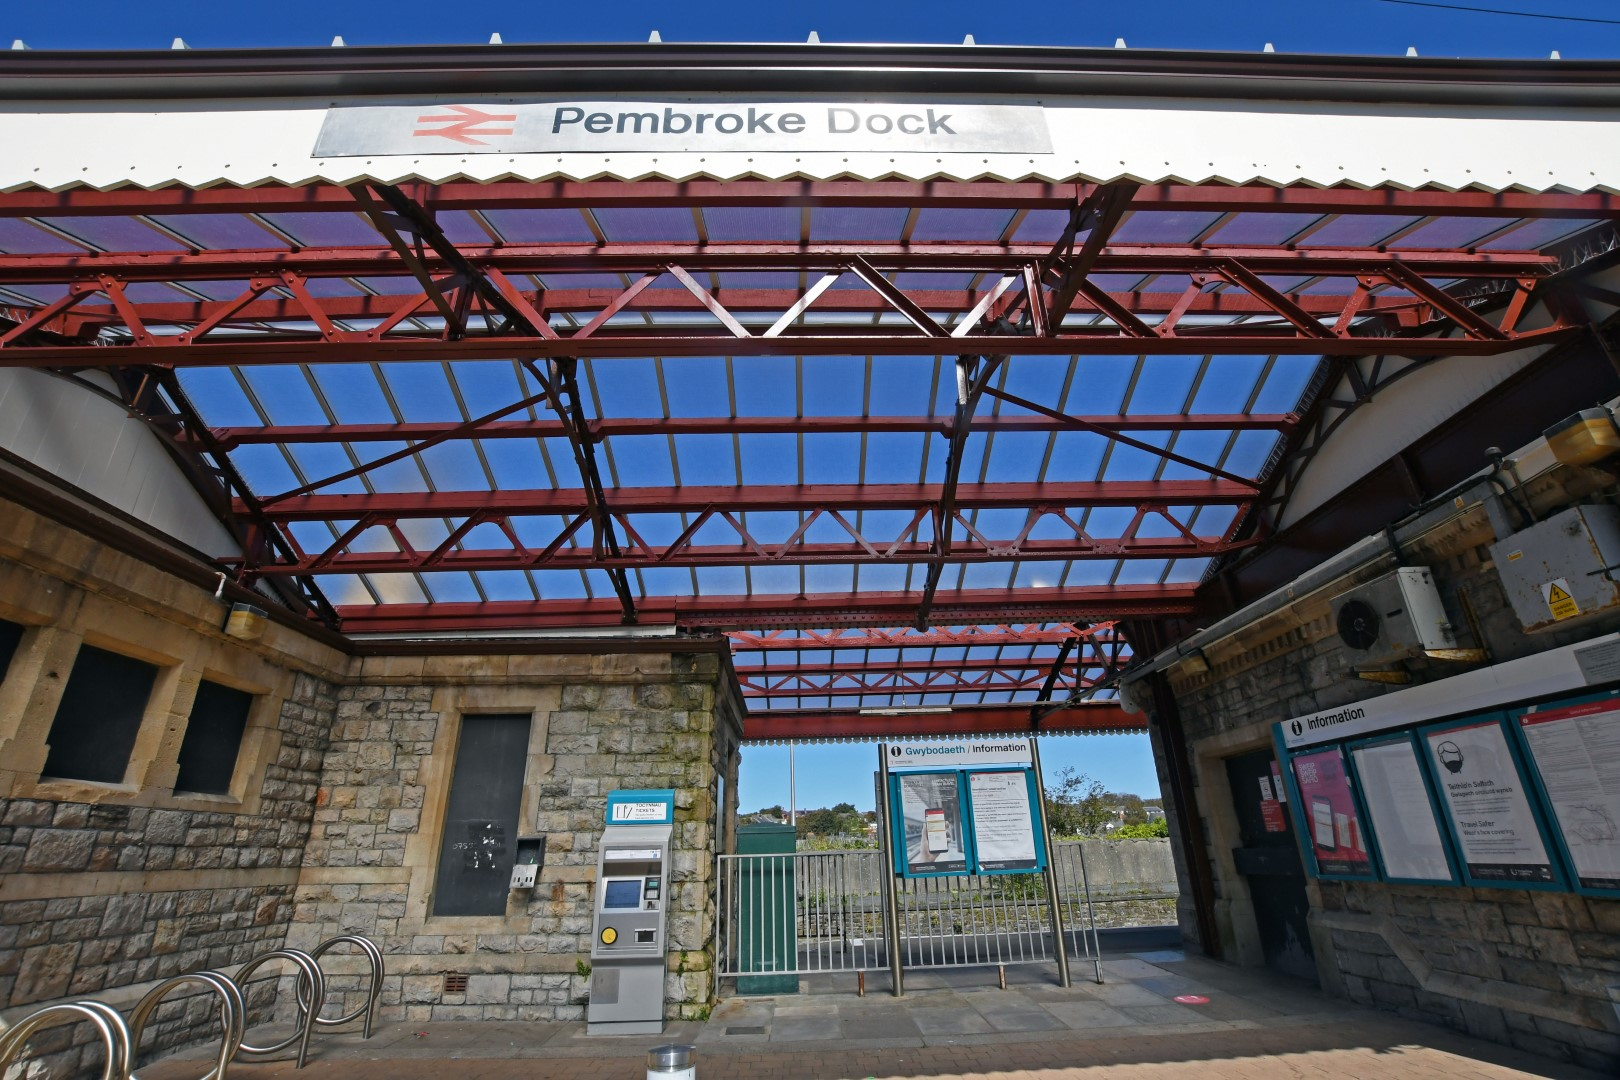 Non-fragile roofing for Pembroke Dock Station